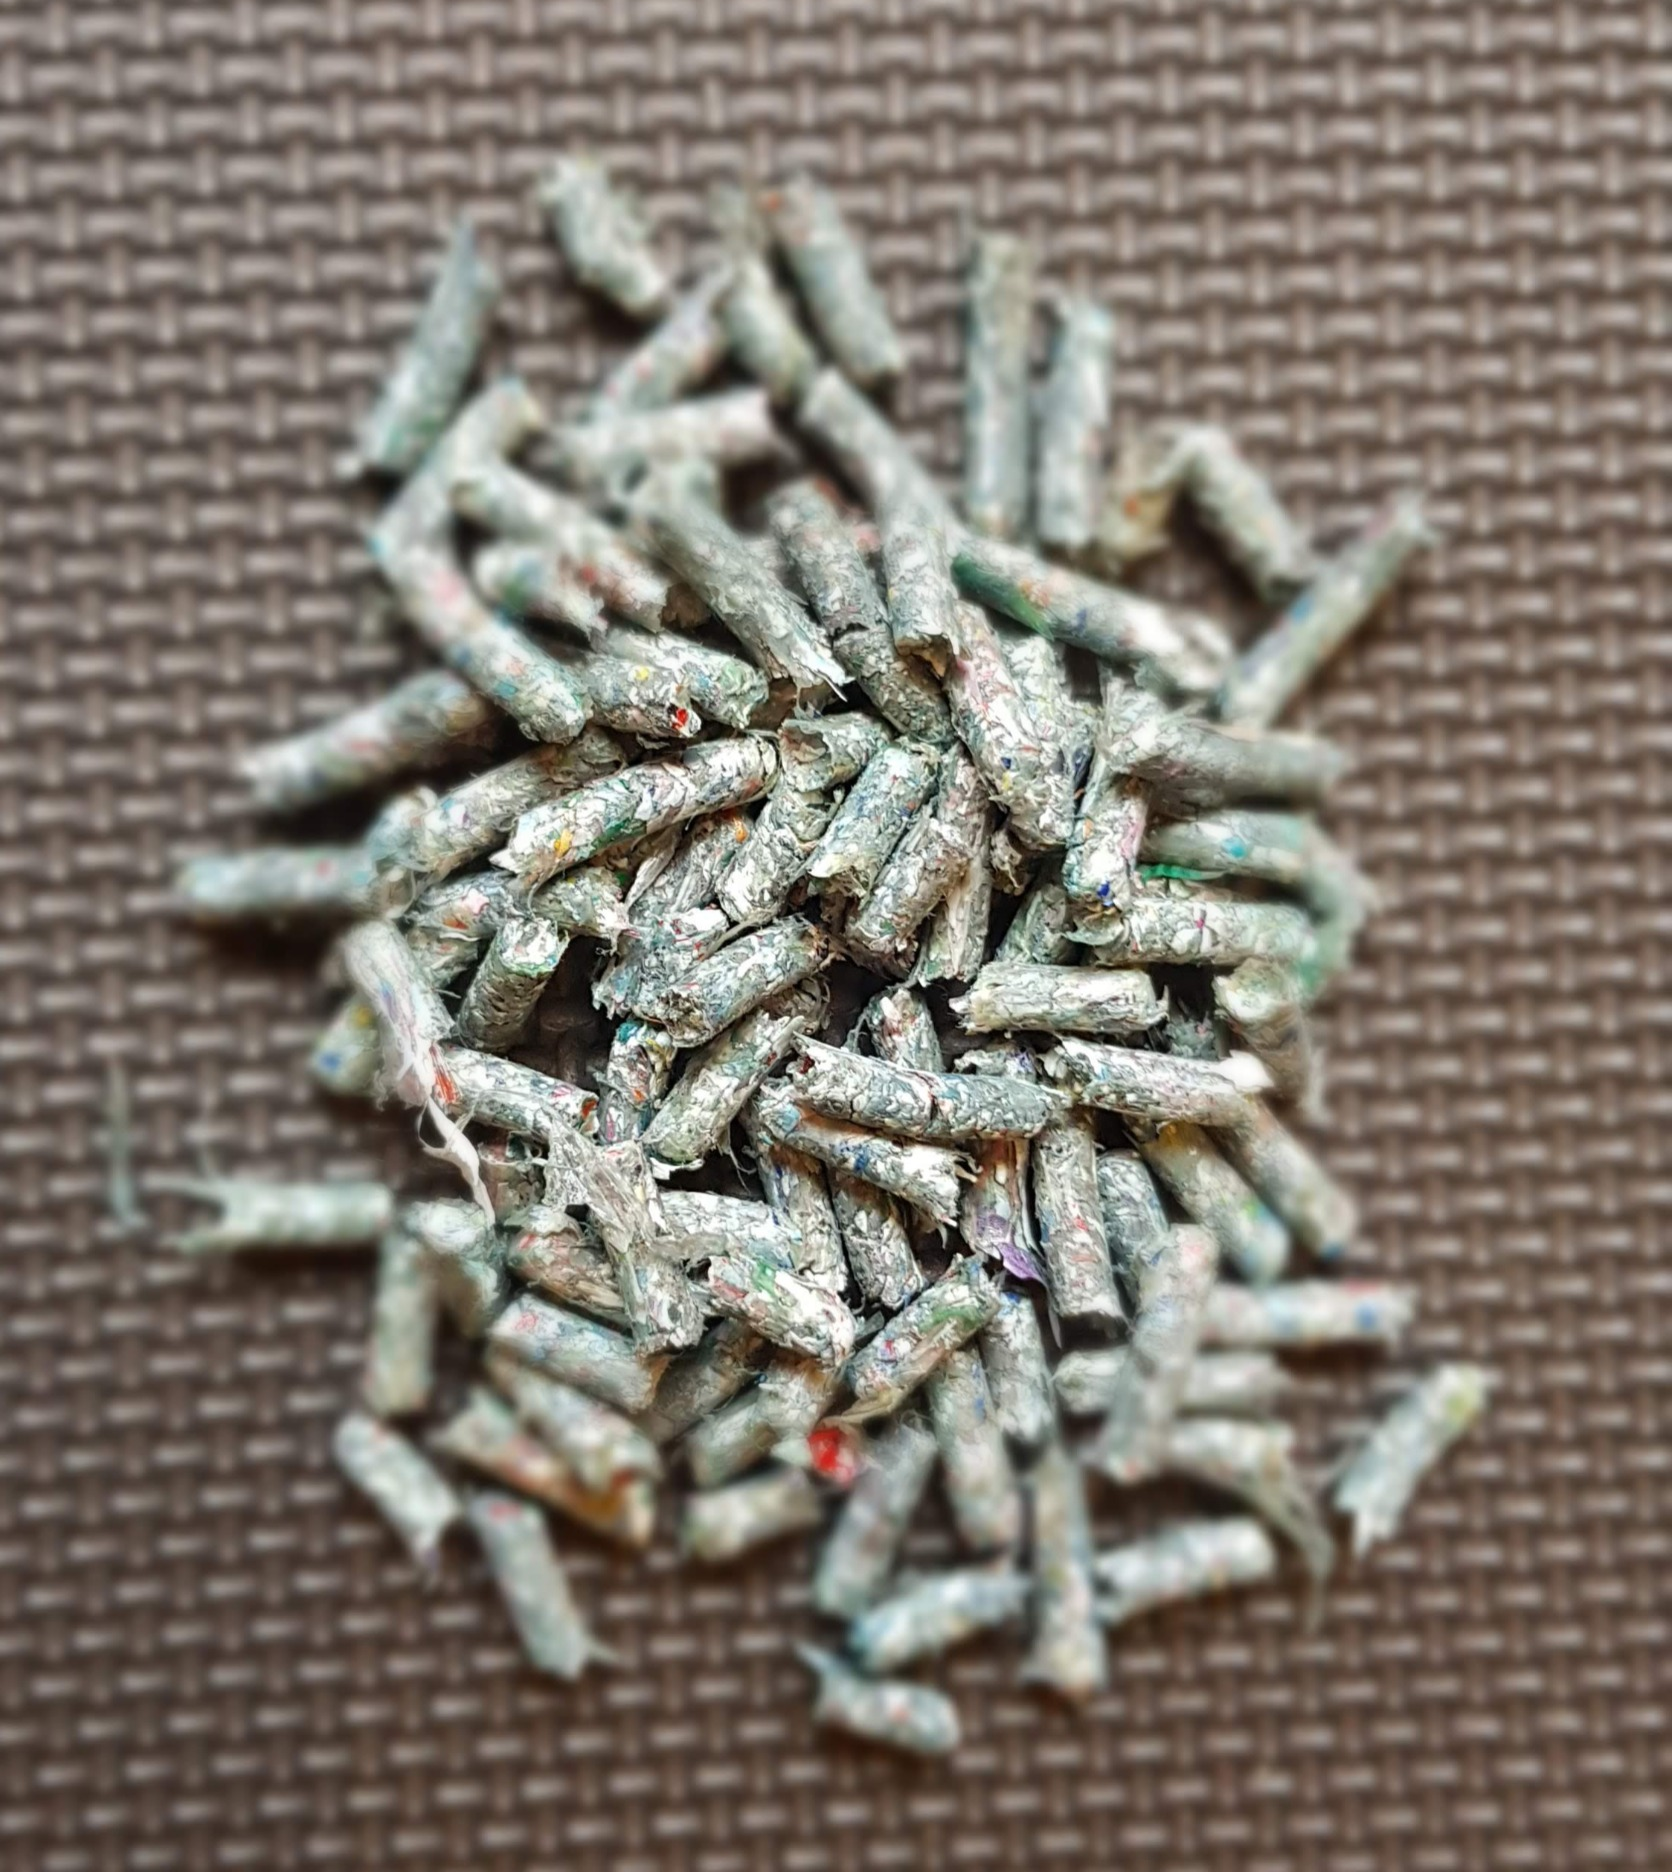 Compressed pellets